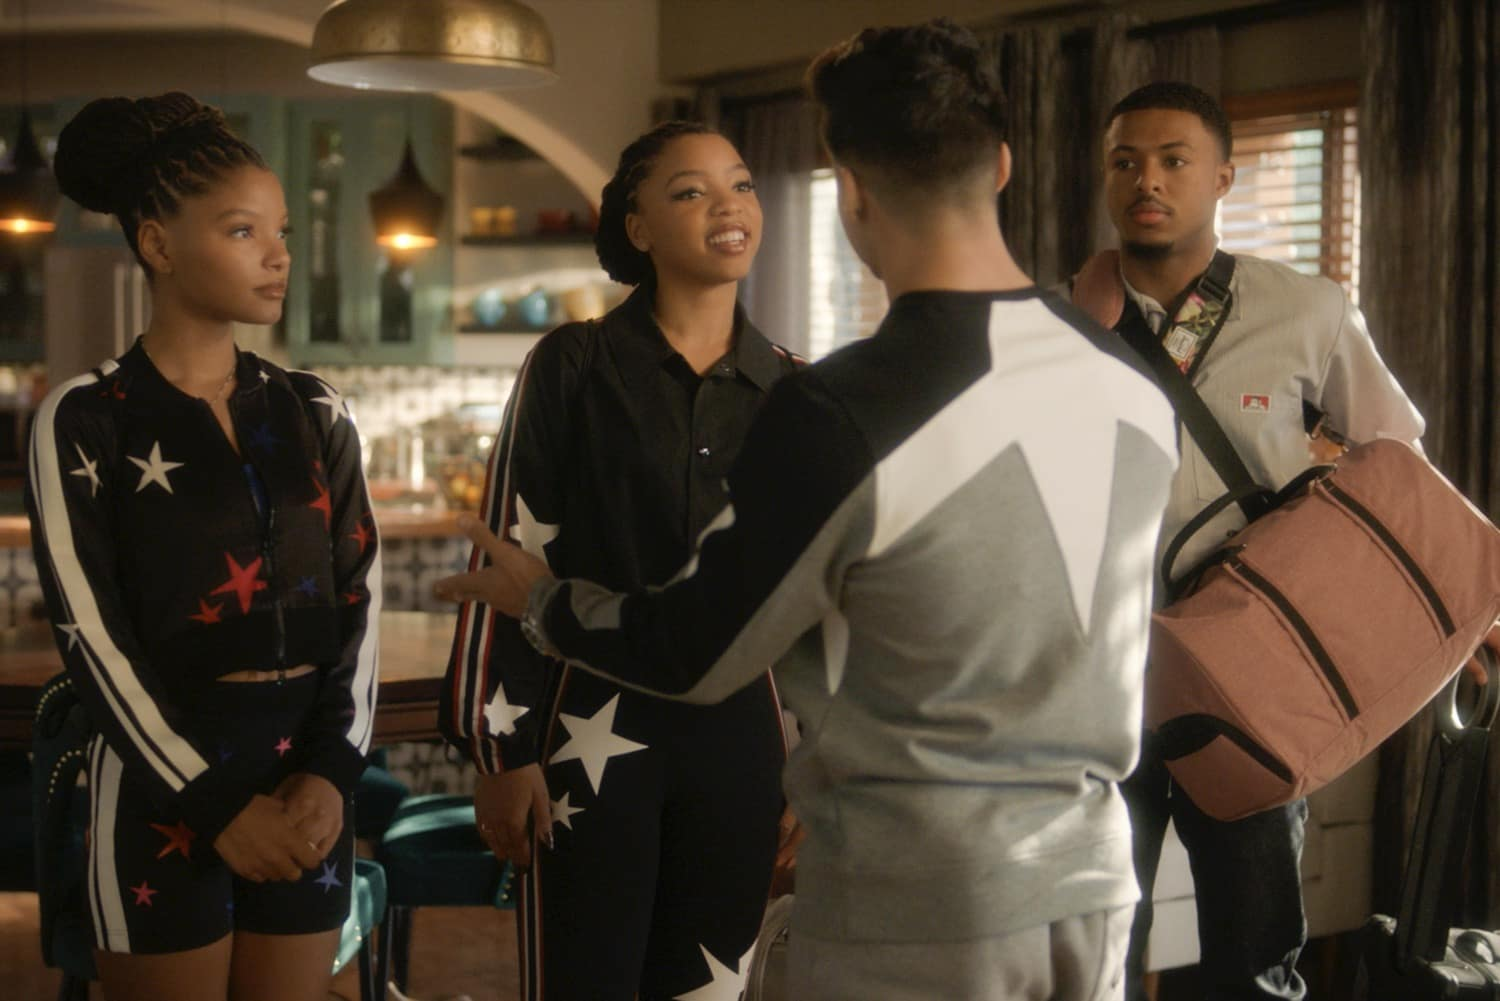 GROWN-ISH Season 3 Episode 16 Photos All In Love Is Fair HALLE BAILEY, CHLOE BAILEY, DIGGY SIMMONS